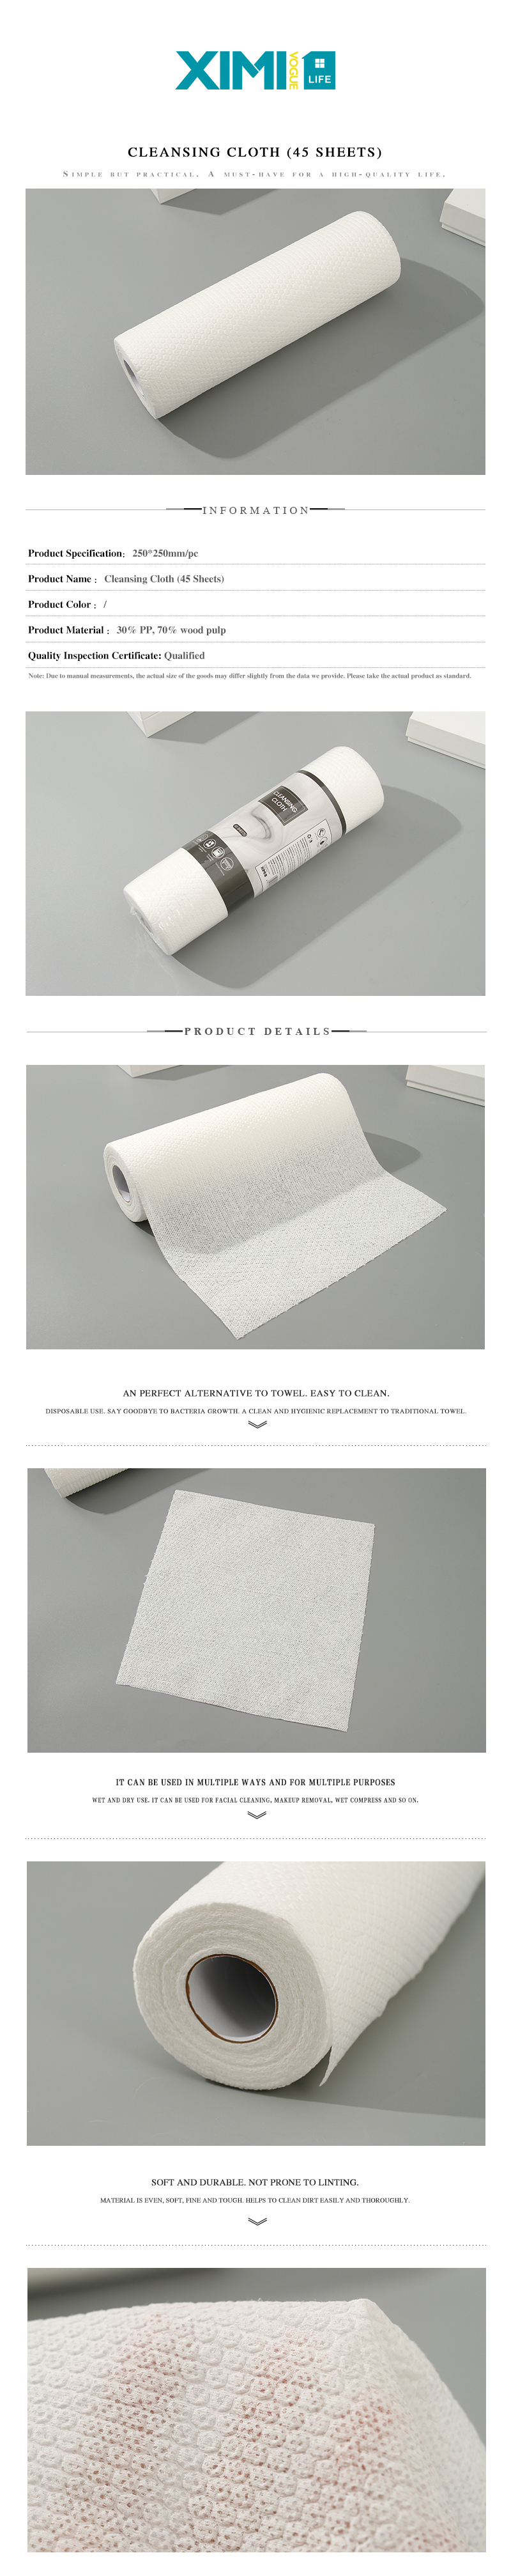 Cleansing Cloth (45 Sheets)